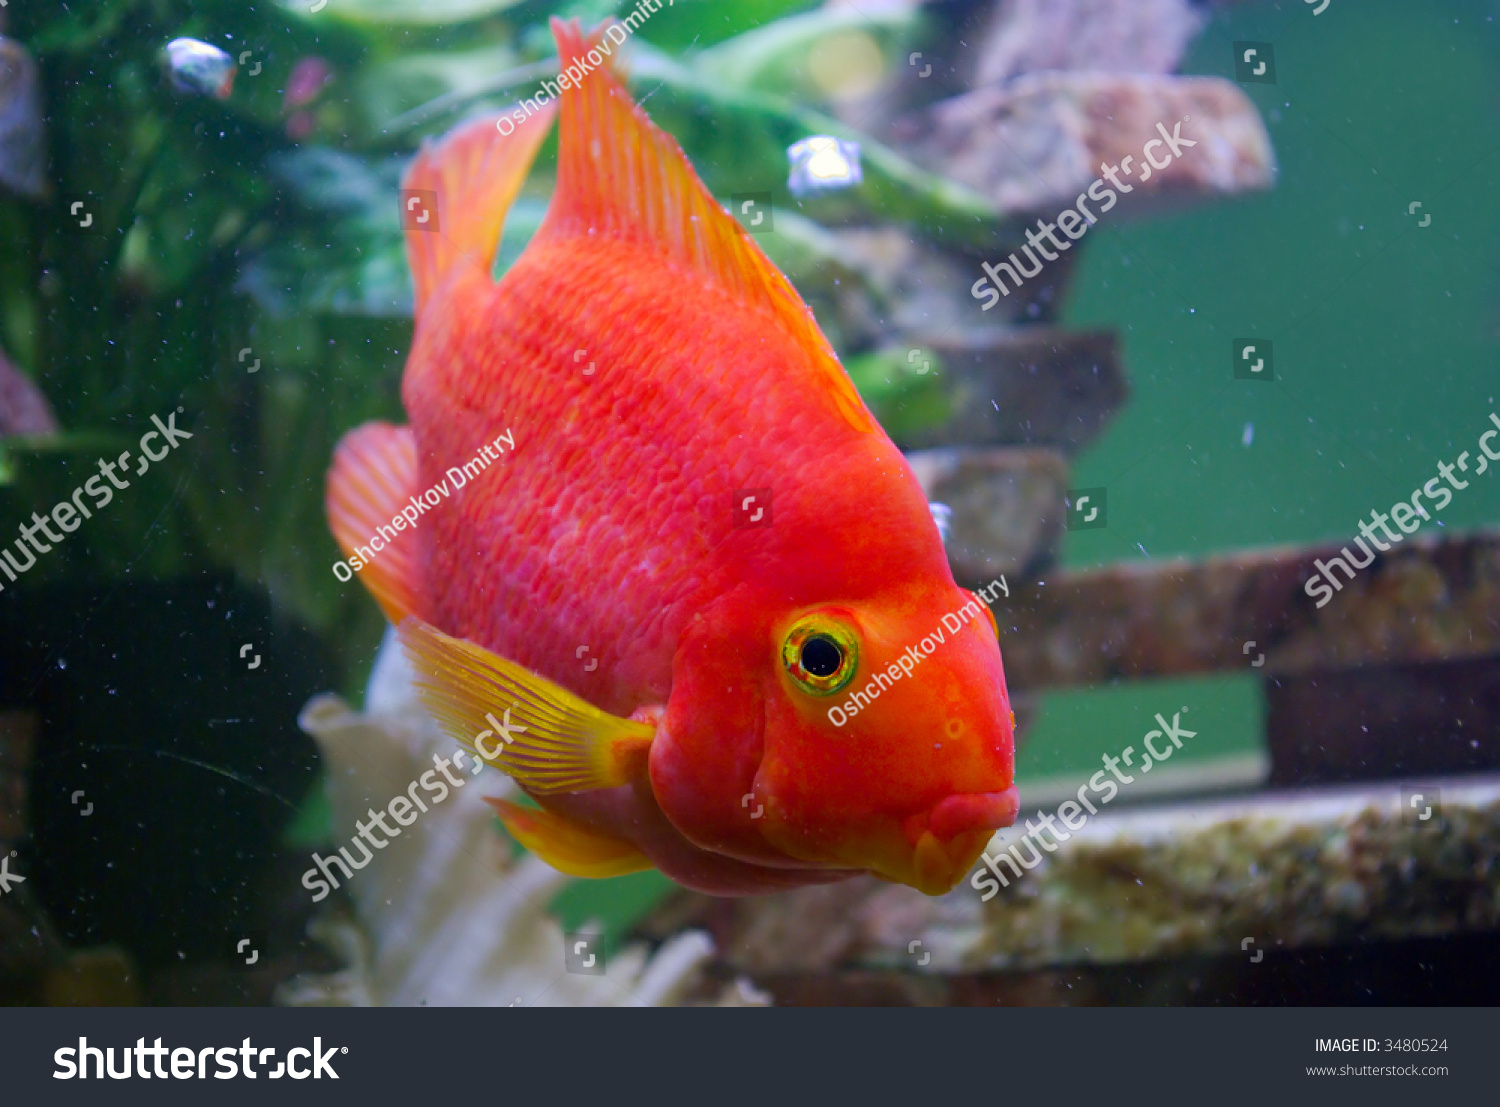 Big Red Parrot Fish Aquarium Bubbles Stock Photo (Safe to Use ...